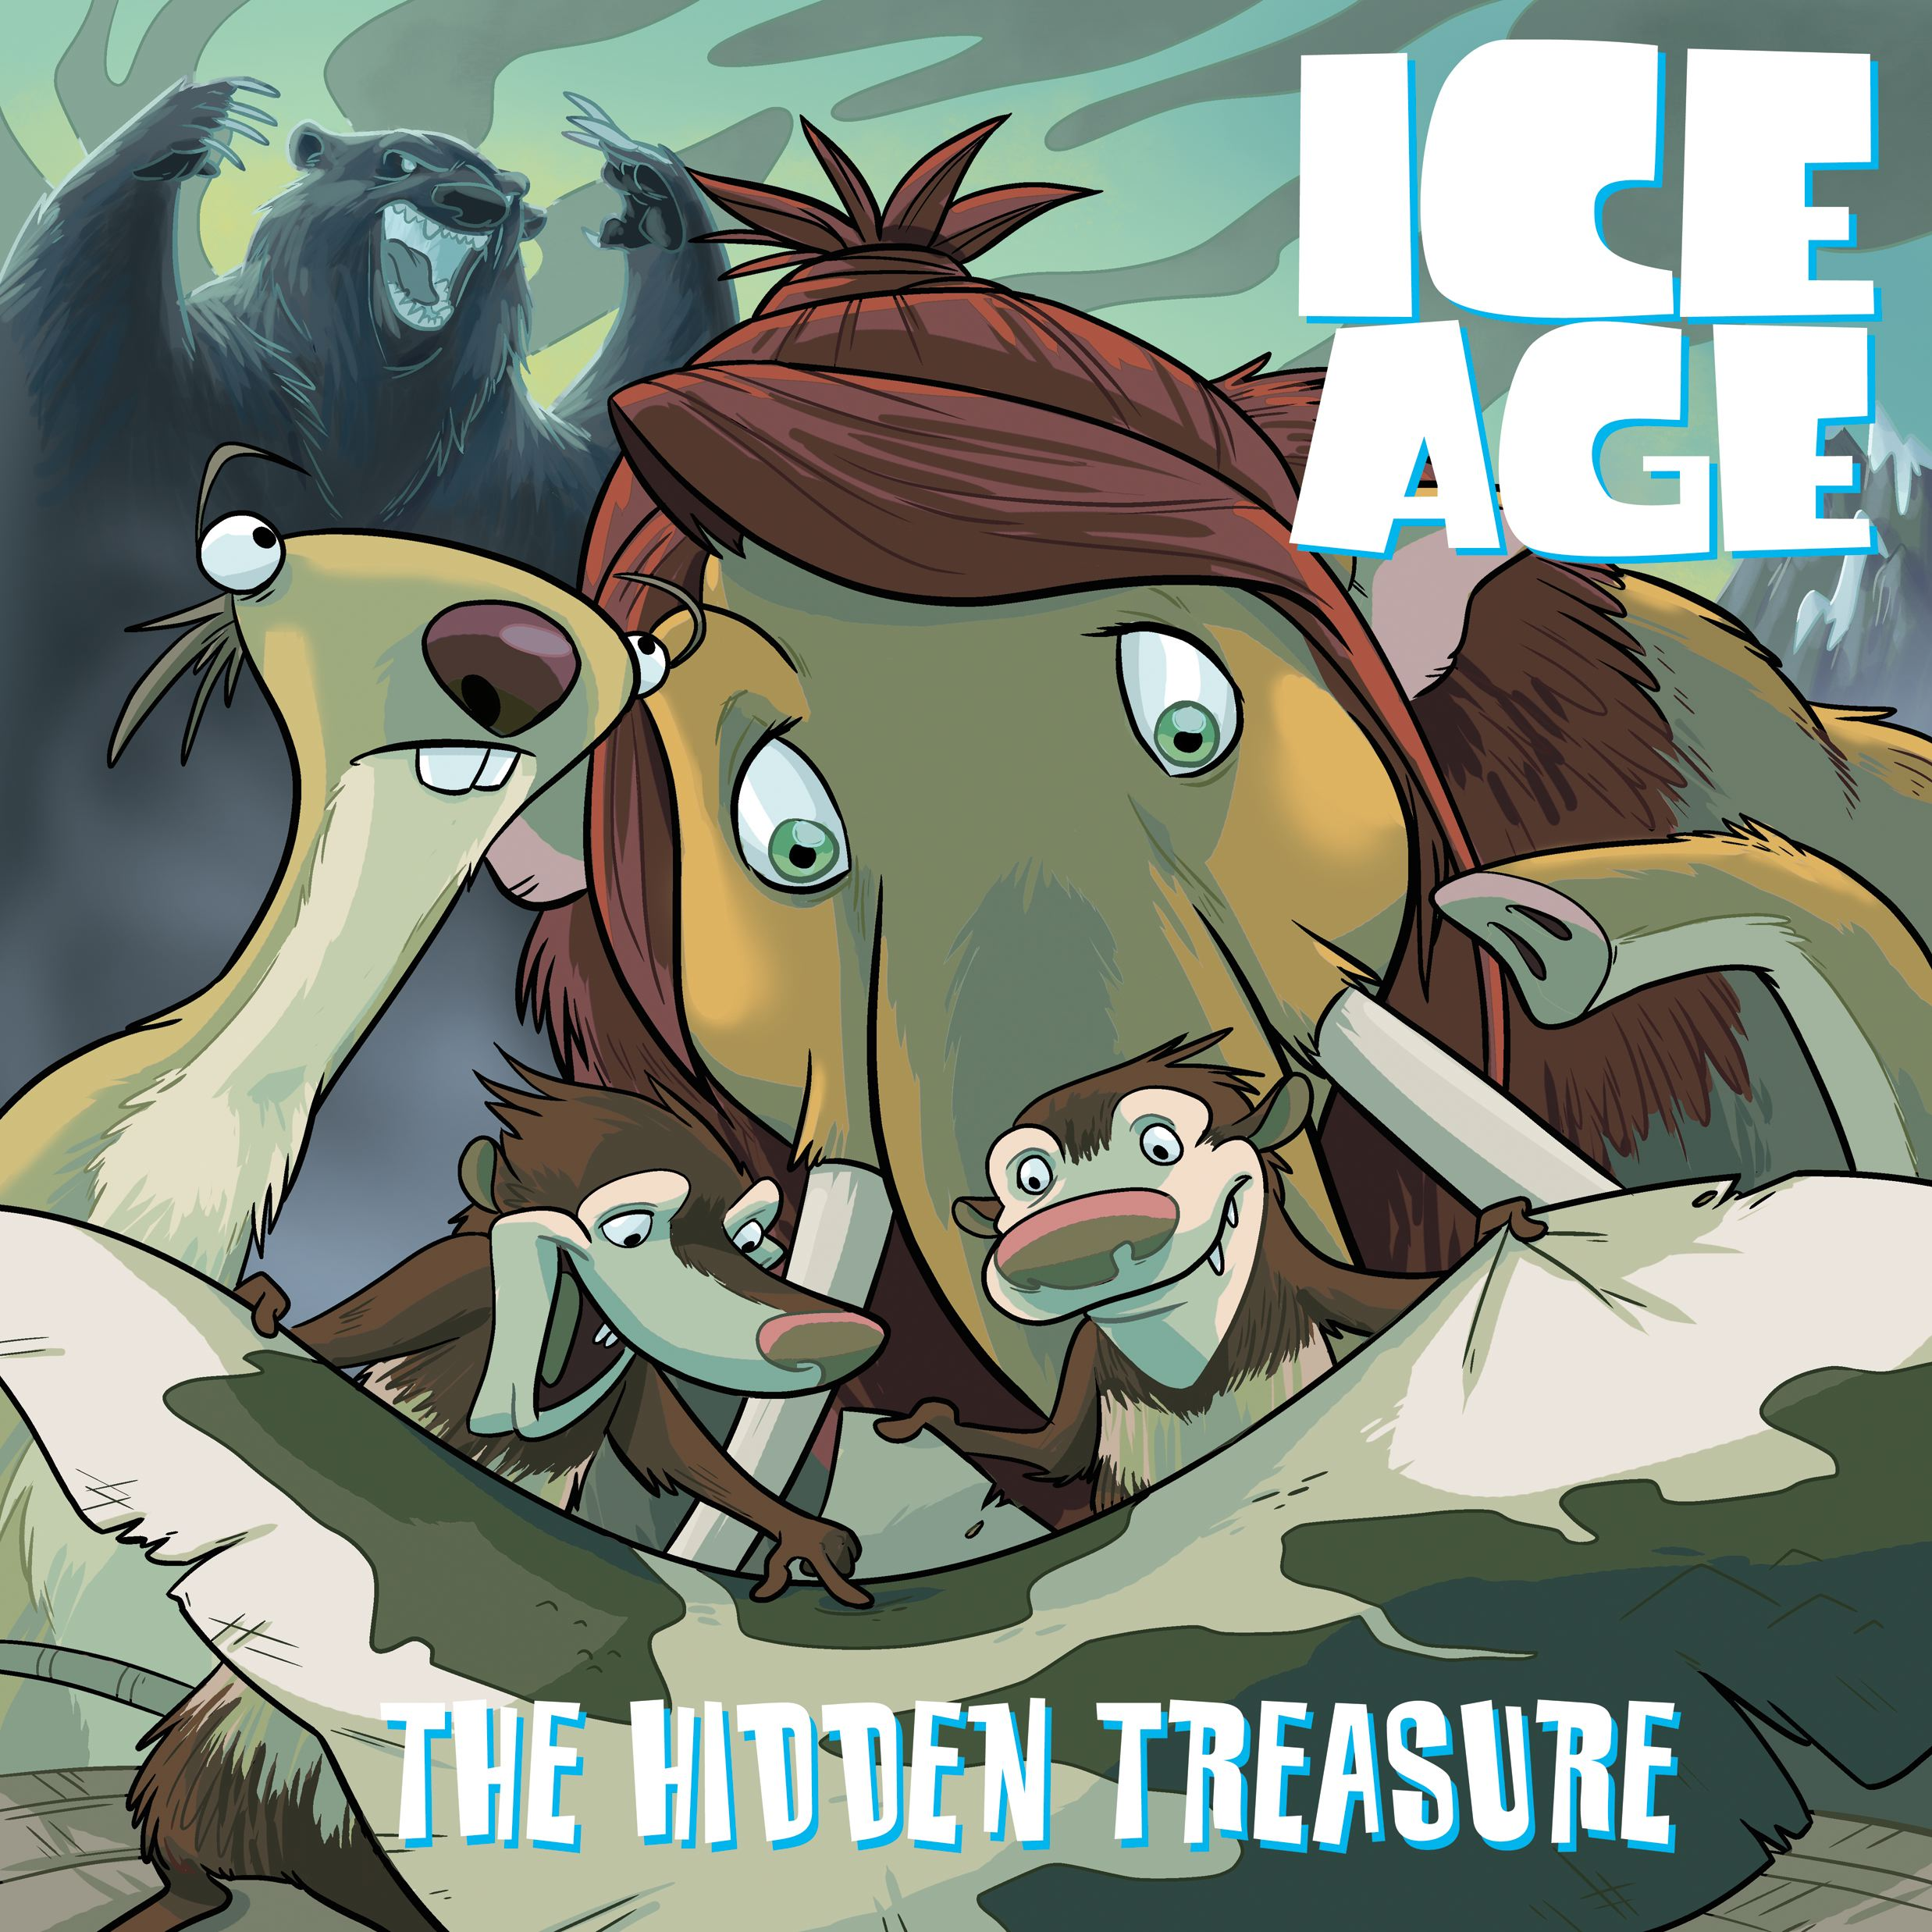 Ice-age-hidden-treasure-9781608863013_hr